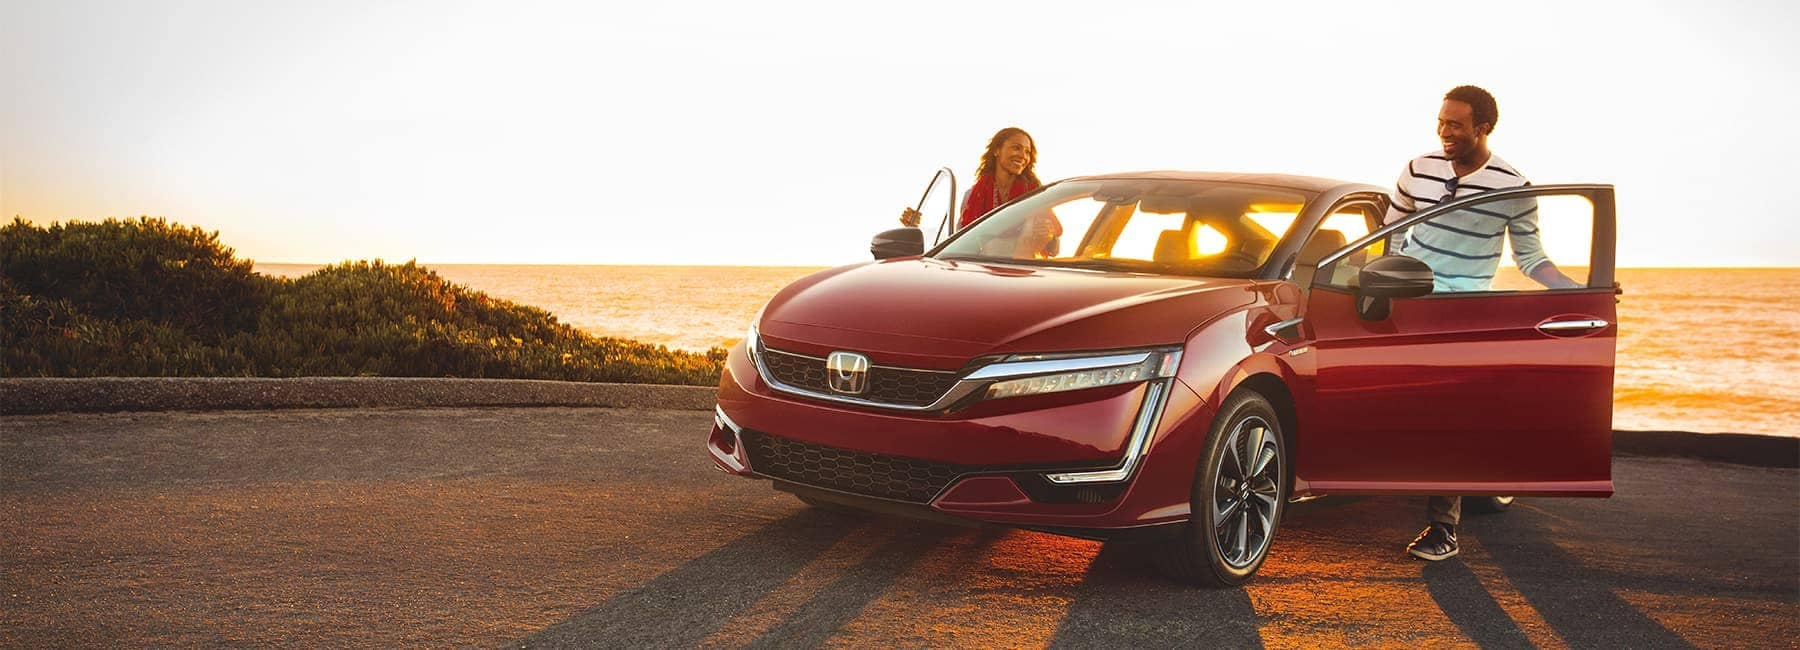 2020-Honda-Clarity-happy-couple-banner